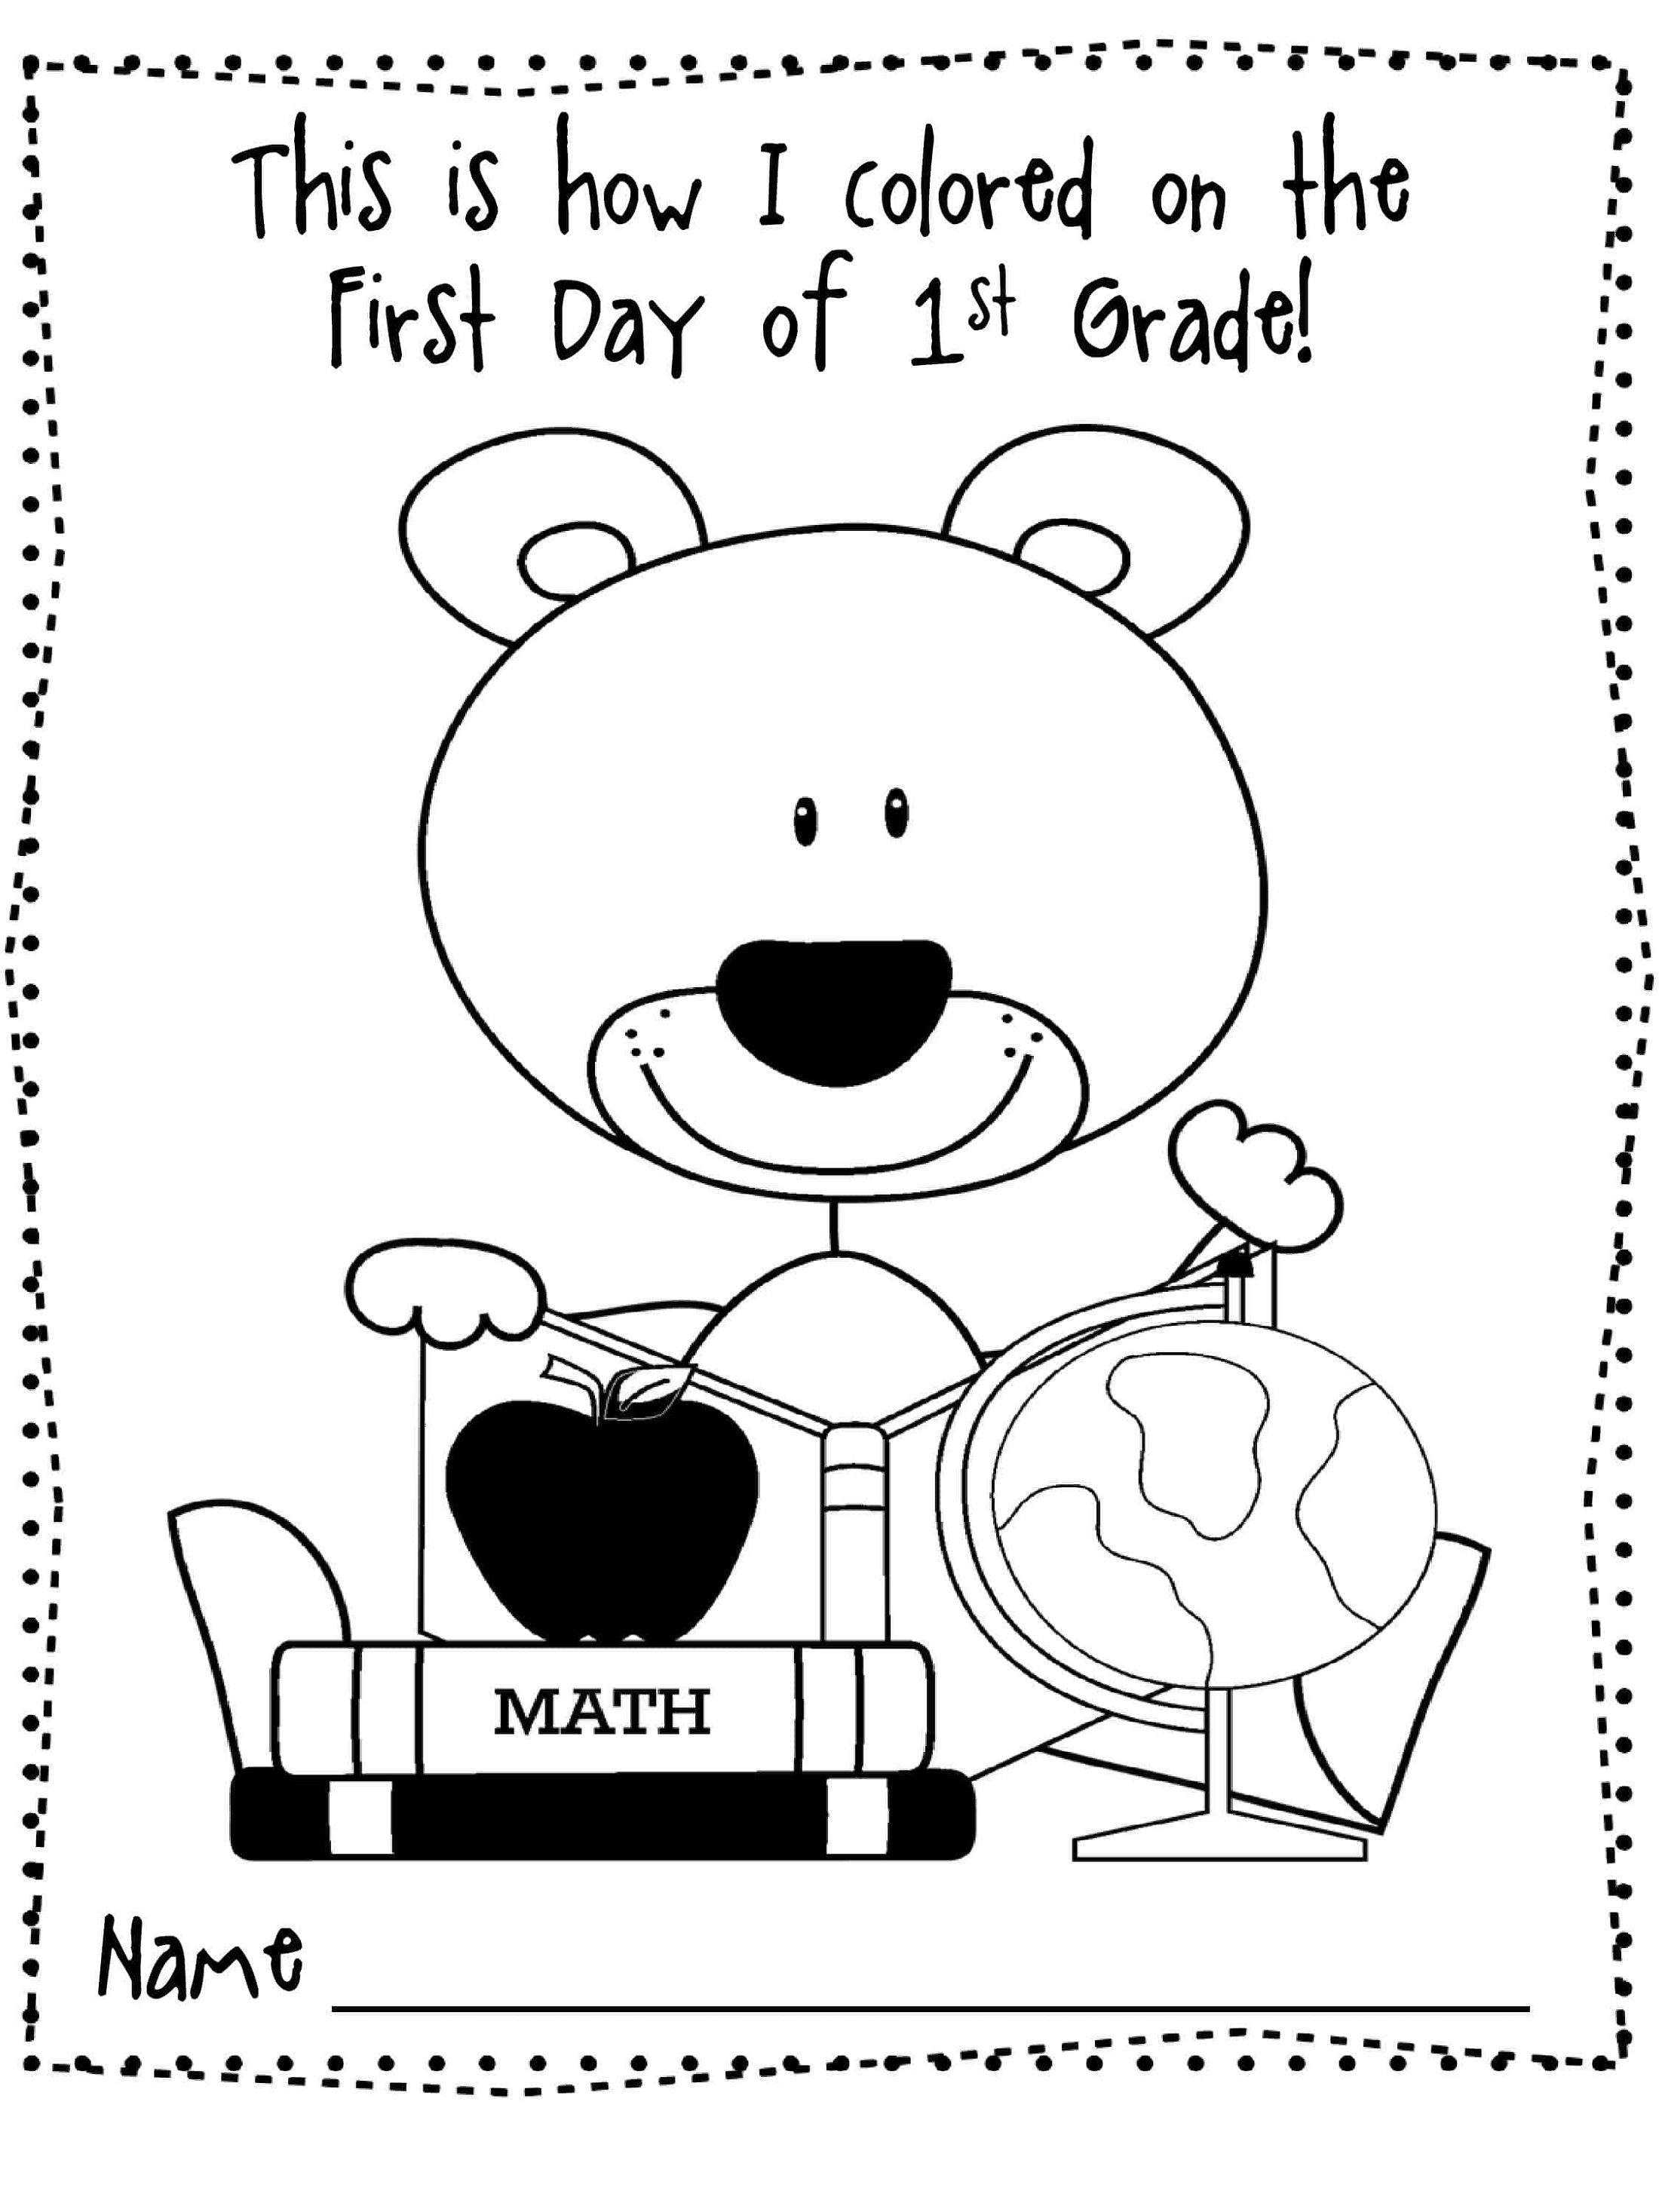 Last Day Of School Coloring Pages